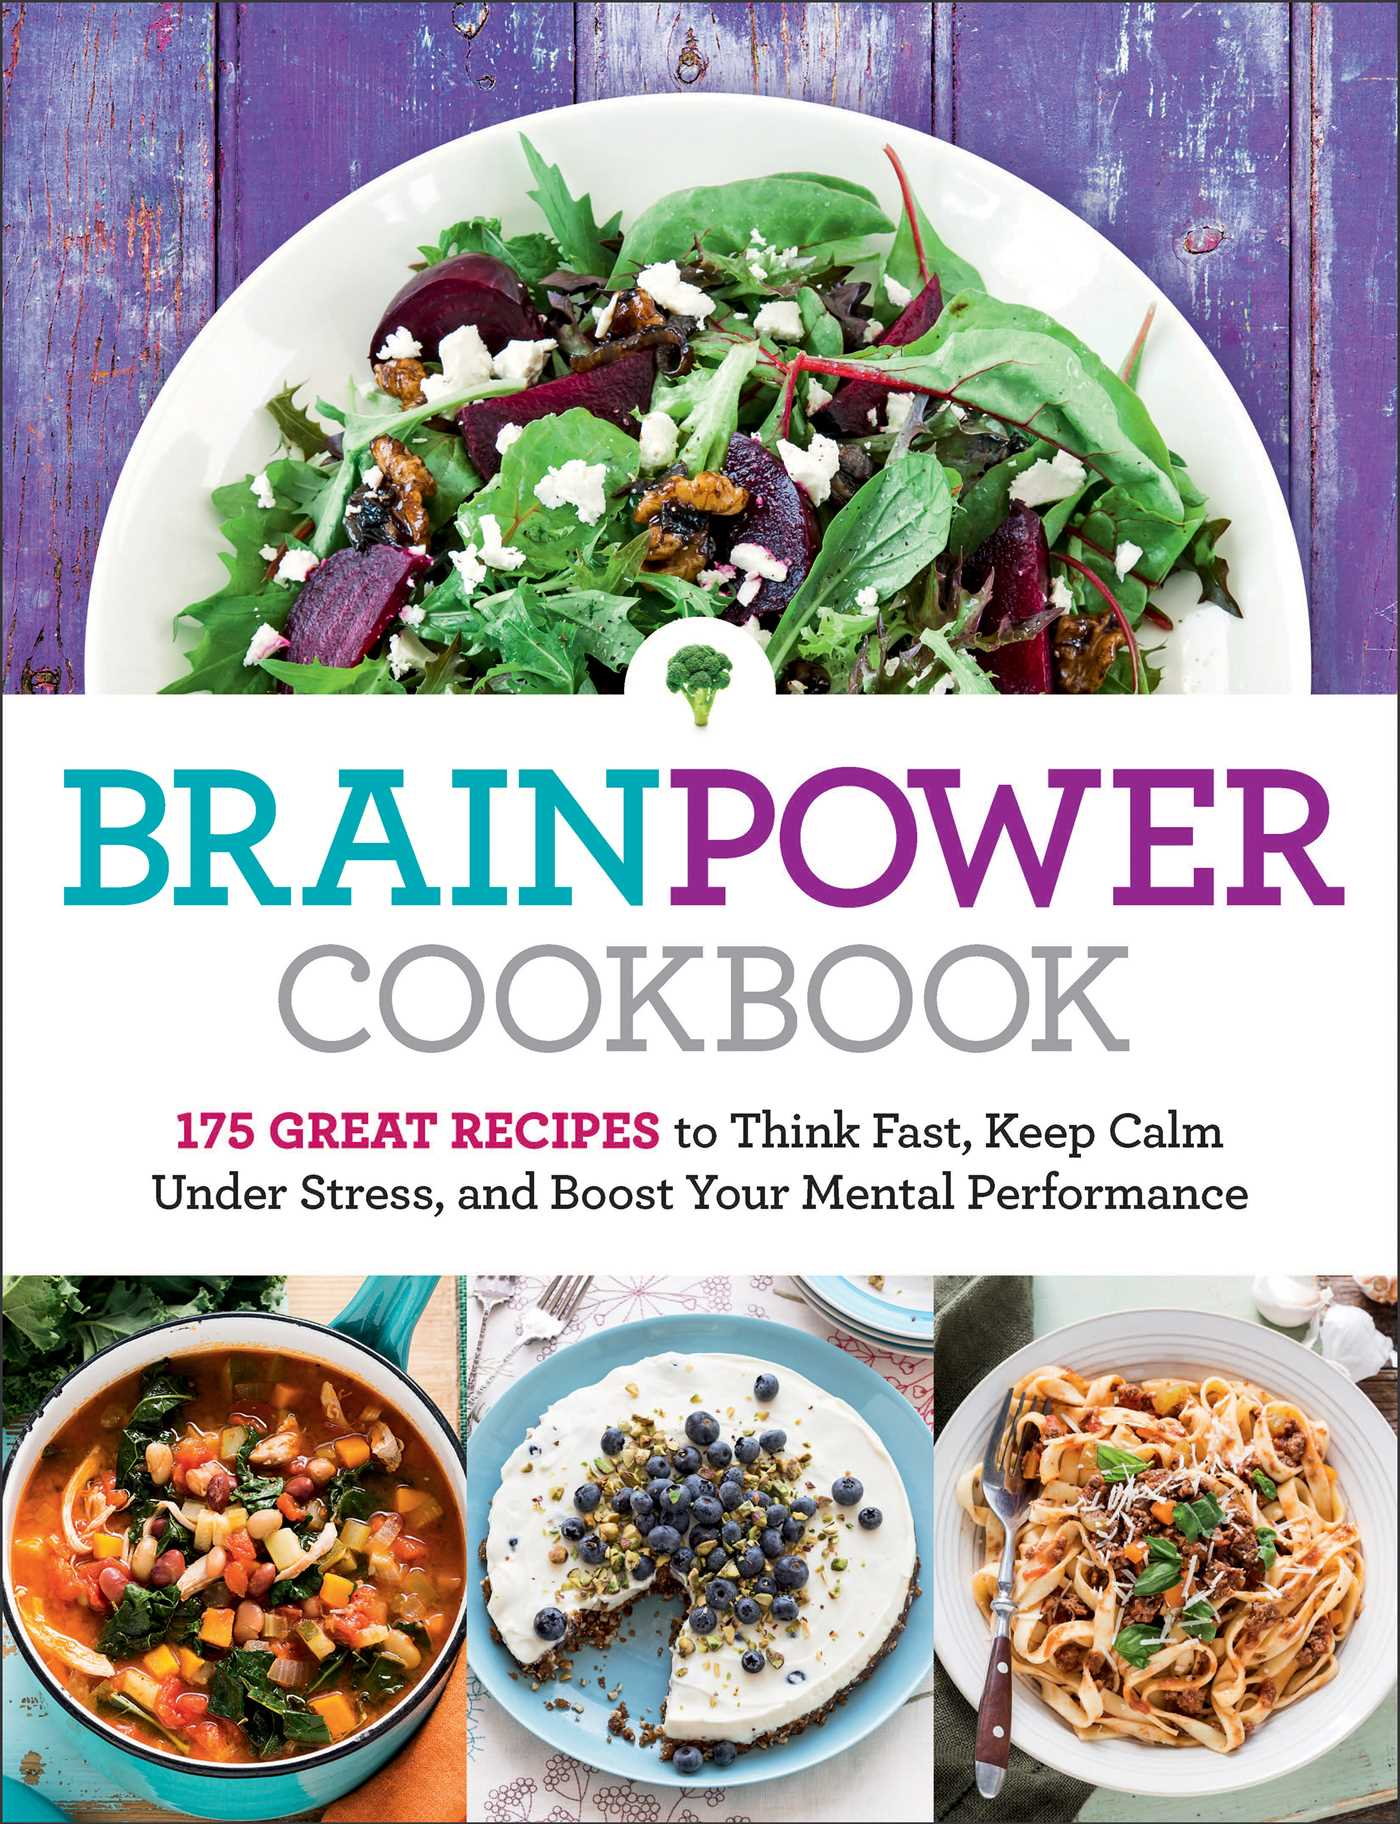 Brain power cookbook book by editors at readers digest official brain power cookbook 9781621453208 hr forumfinder Image collections